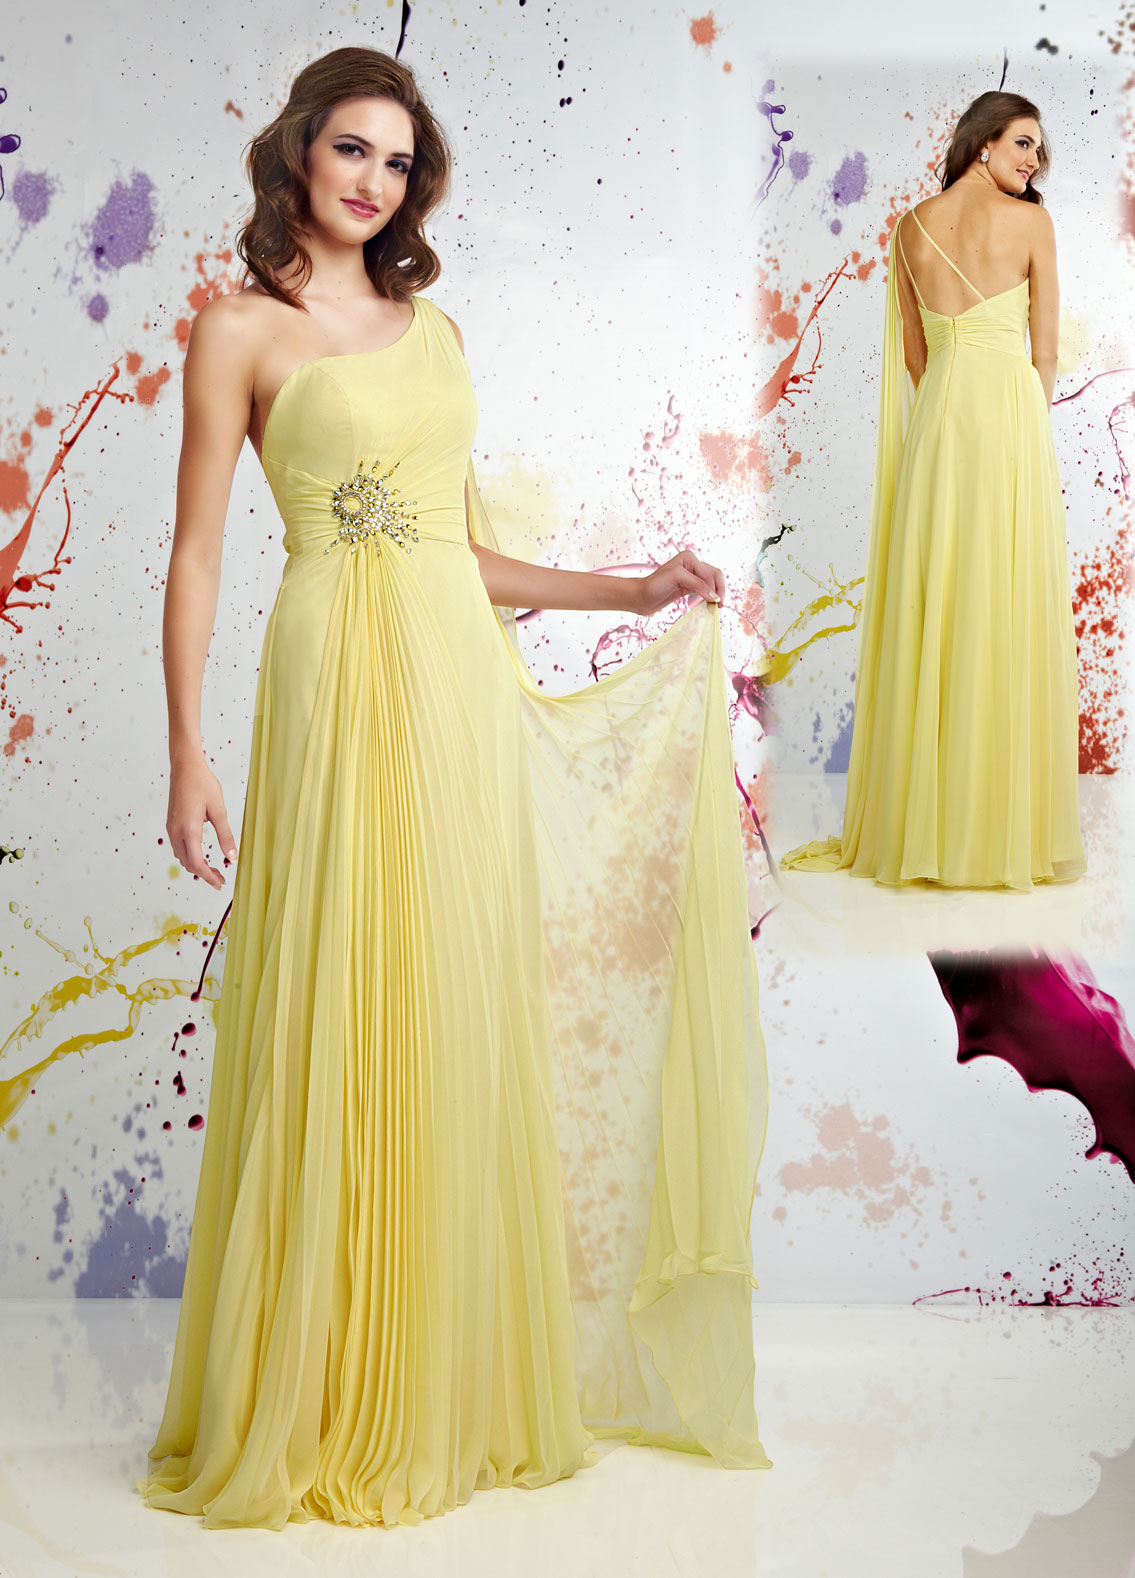 Lemon special occasion dresses